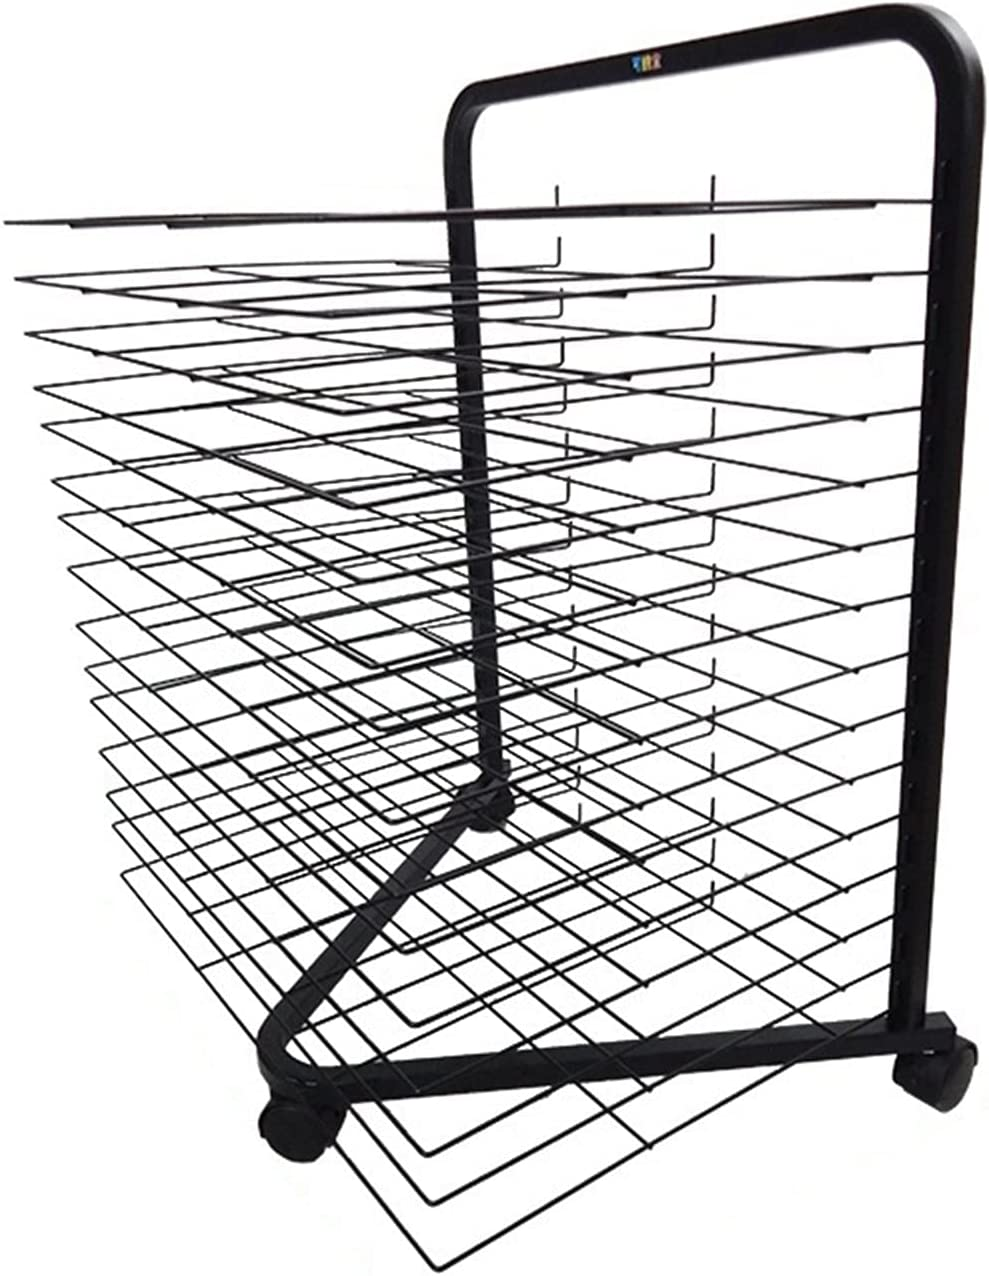 YSCMX Drying Rack 15-Shelf with Max Max 80% OFF 65% OFF Mobile D Classrooms